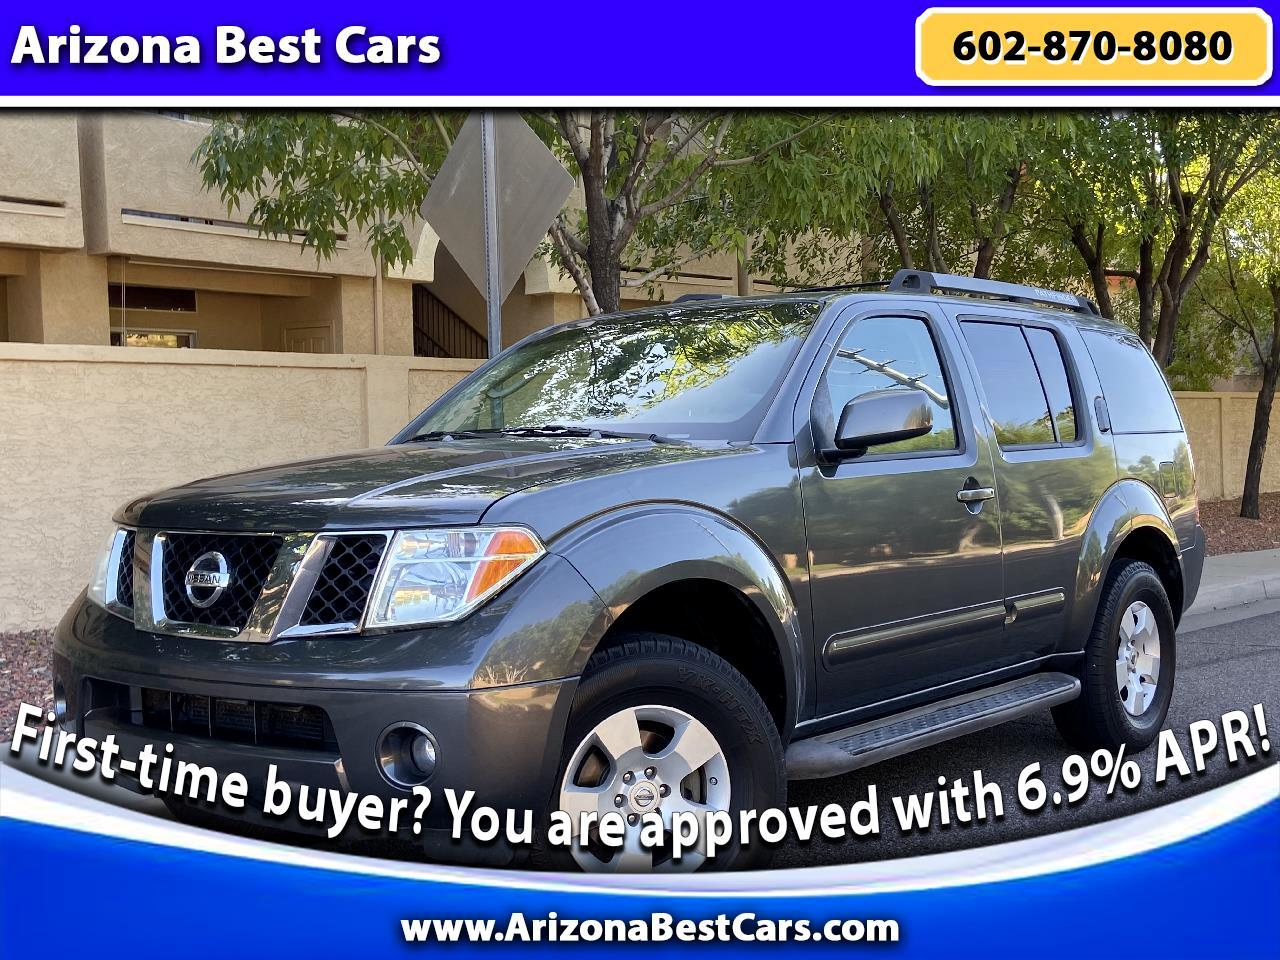 2006 Nissan Pathfinder SE 4WD Off Road